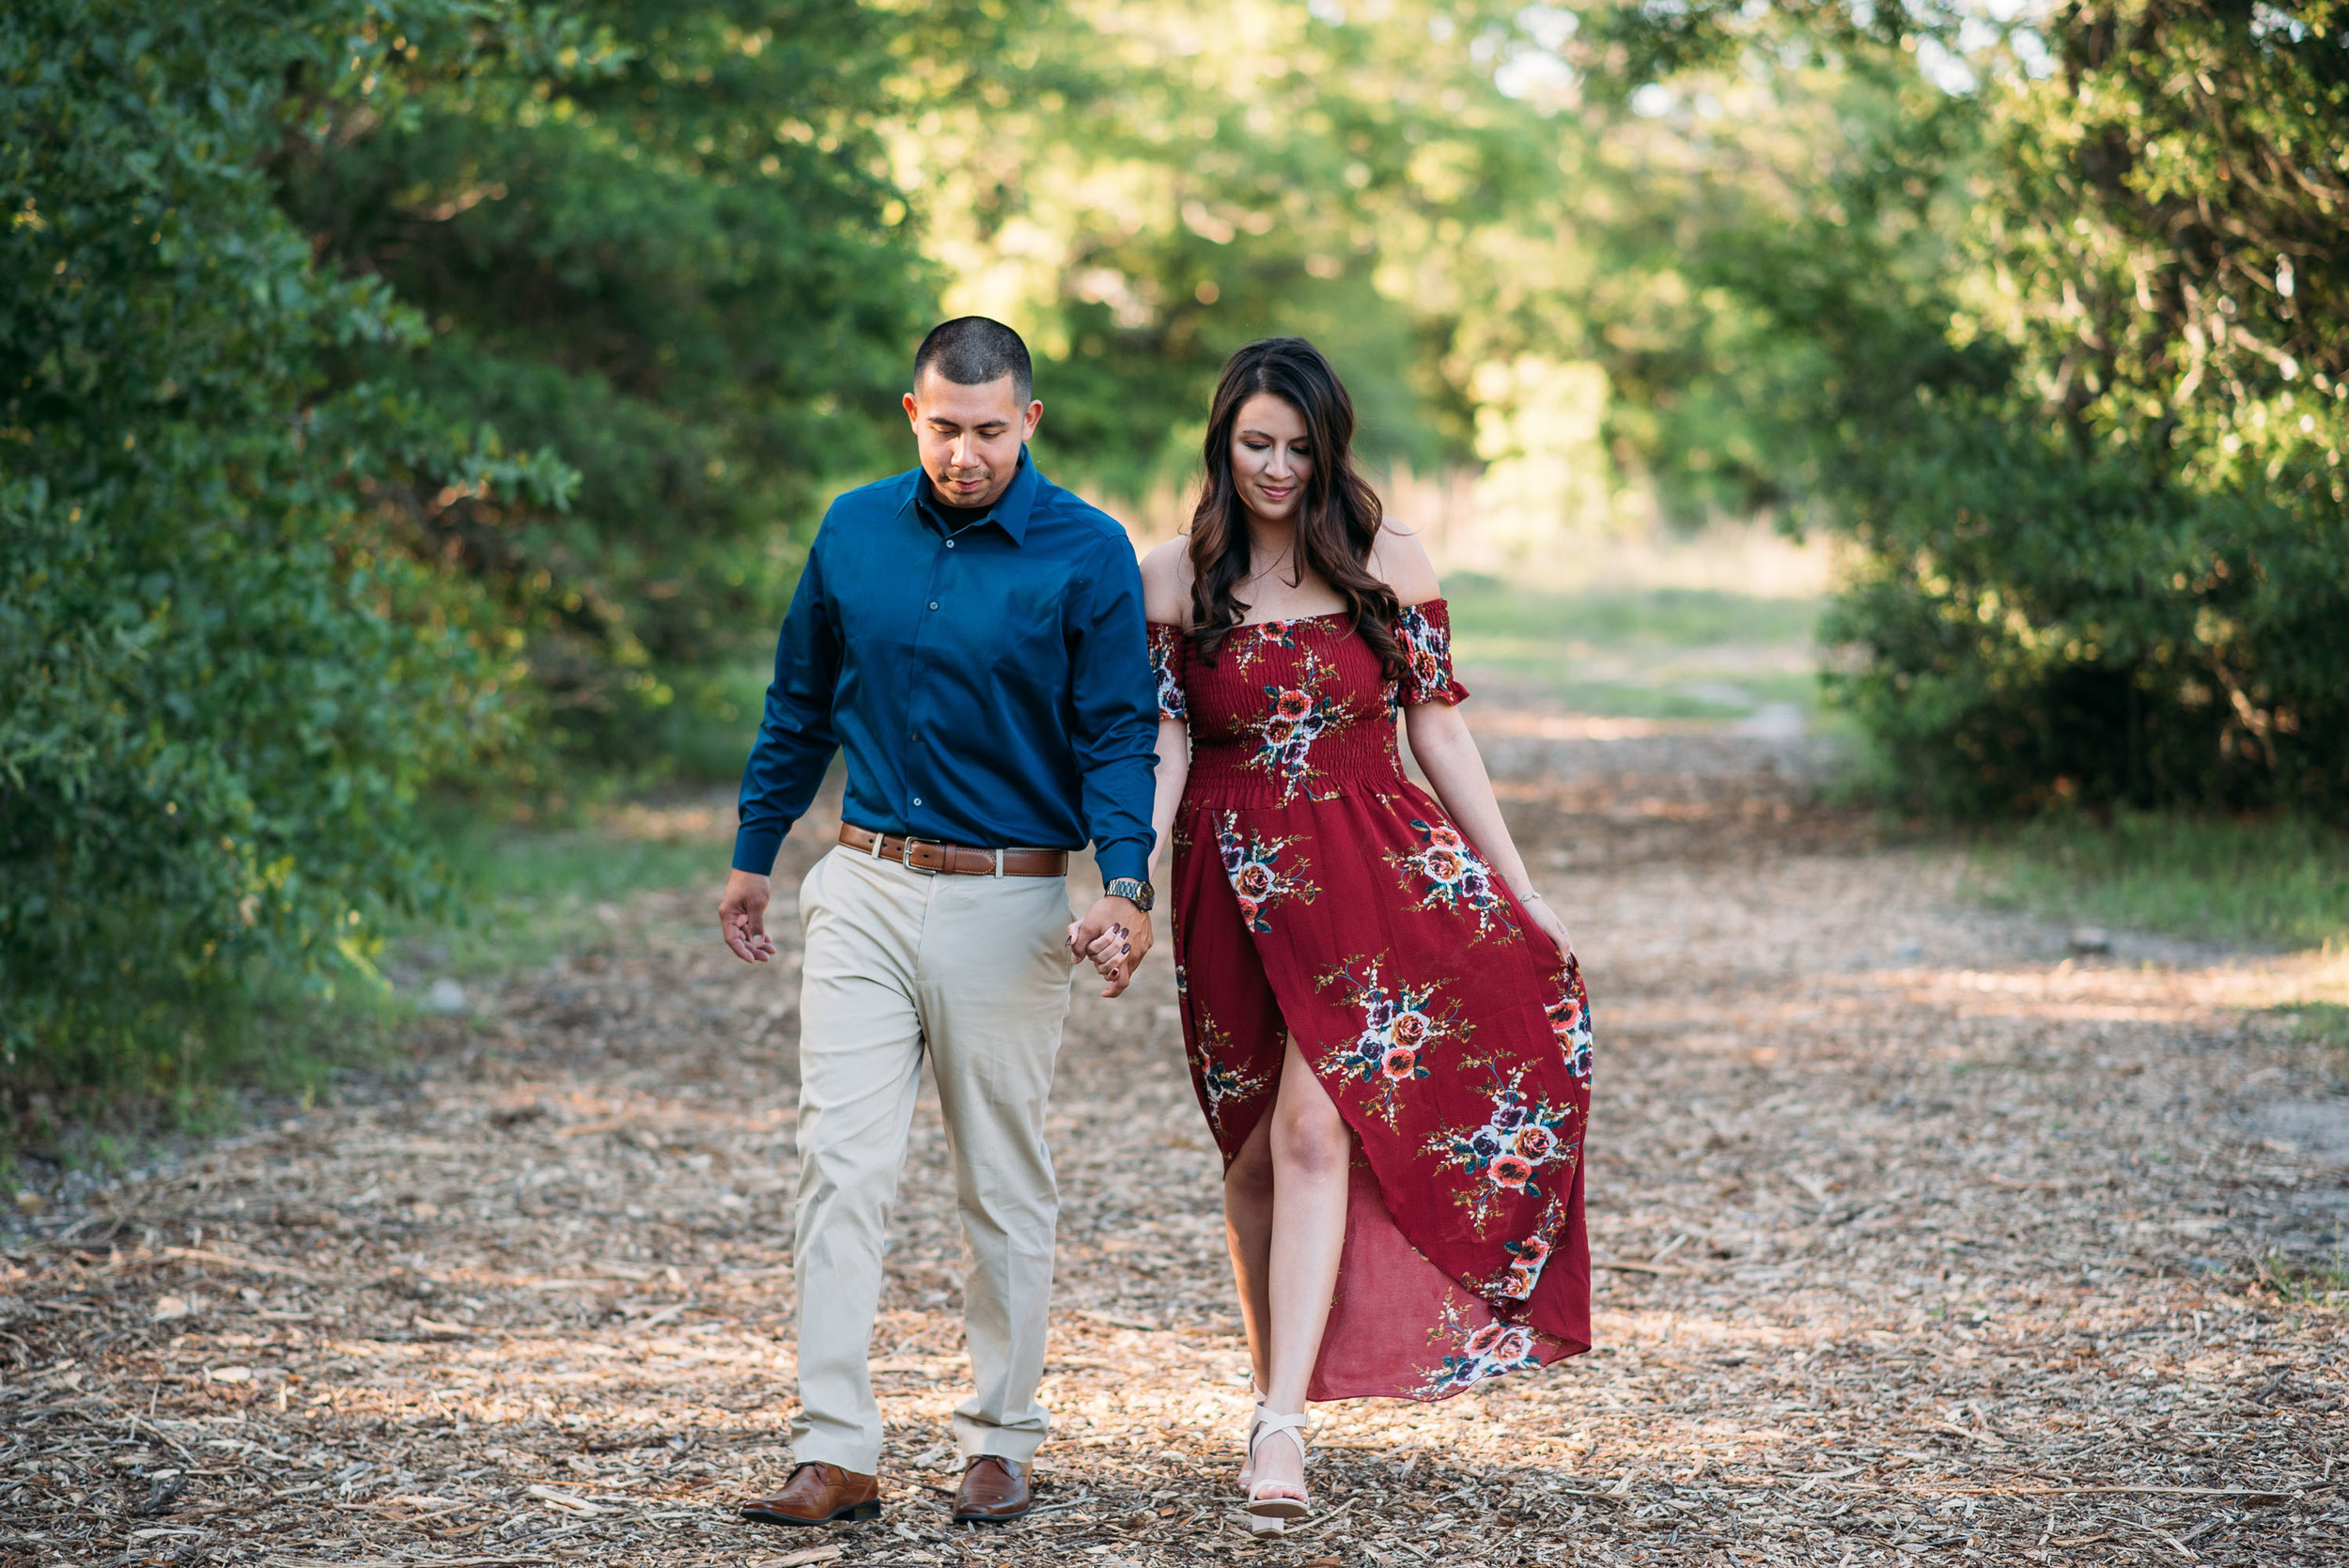 Aggie_Engagement_CollegeStation_LickCreekPark_10.jpg